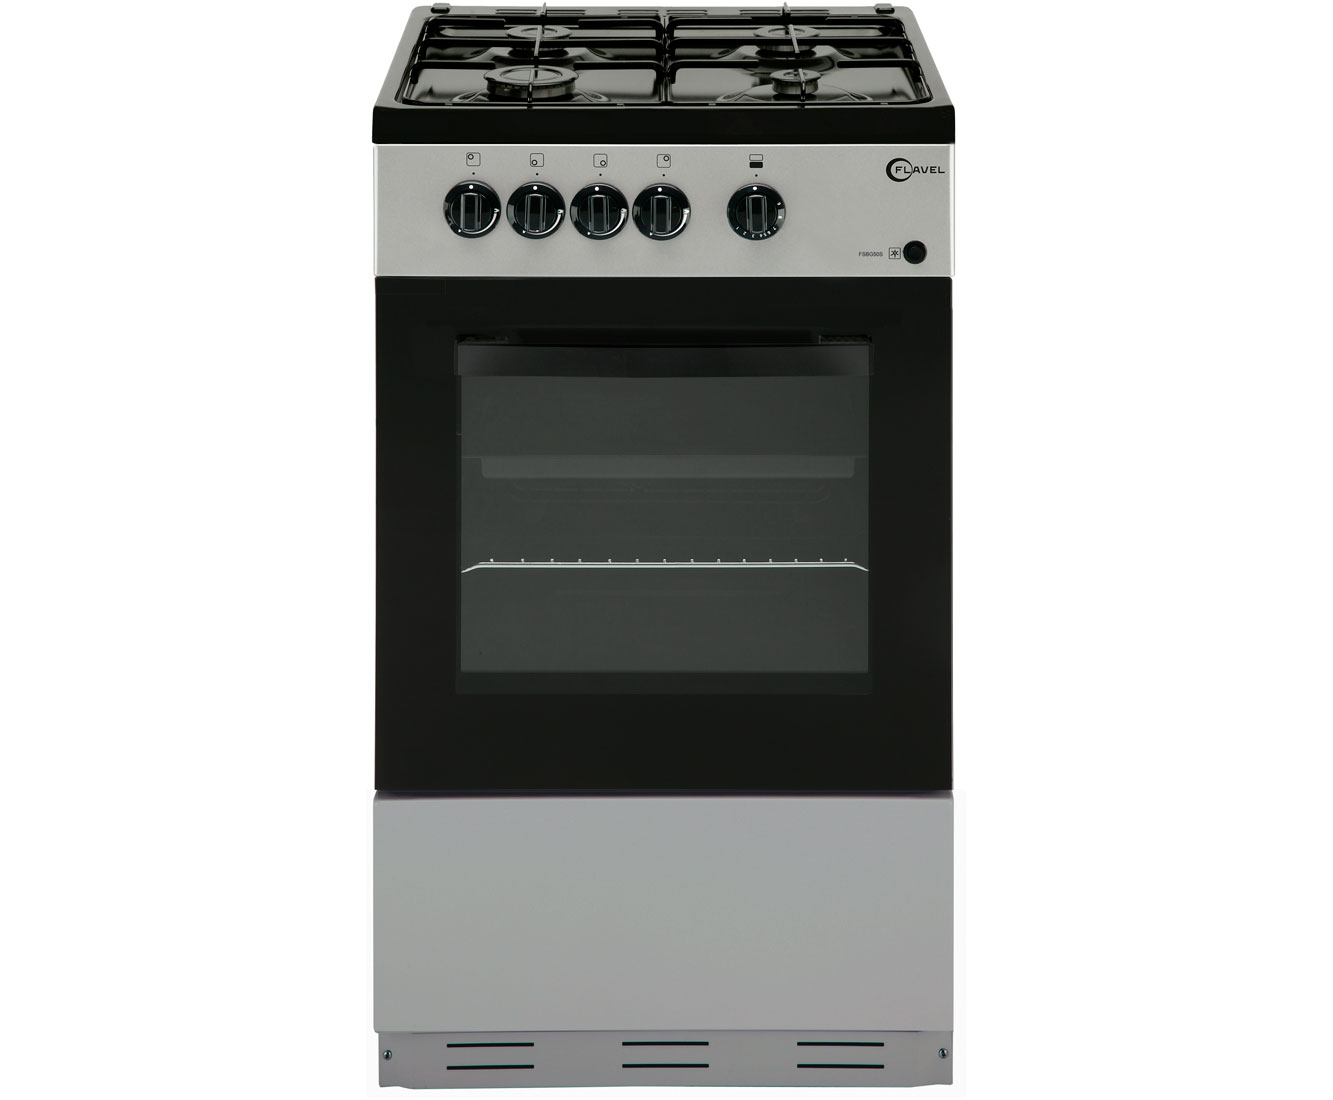 Flavel FSBG51S Gas Cooker - Silver